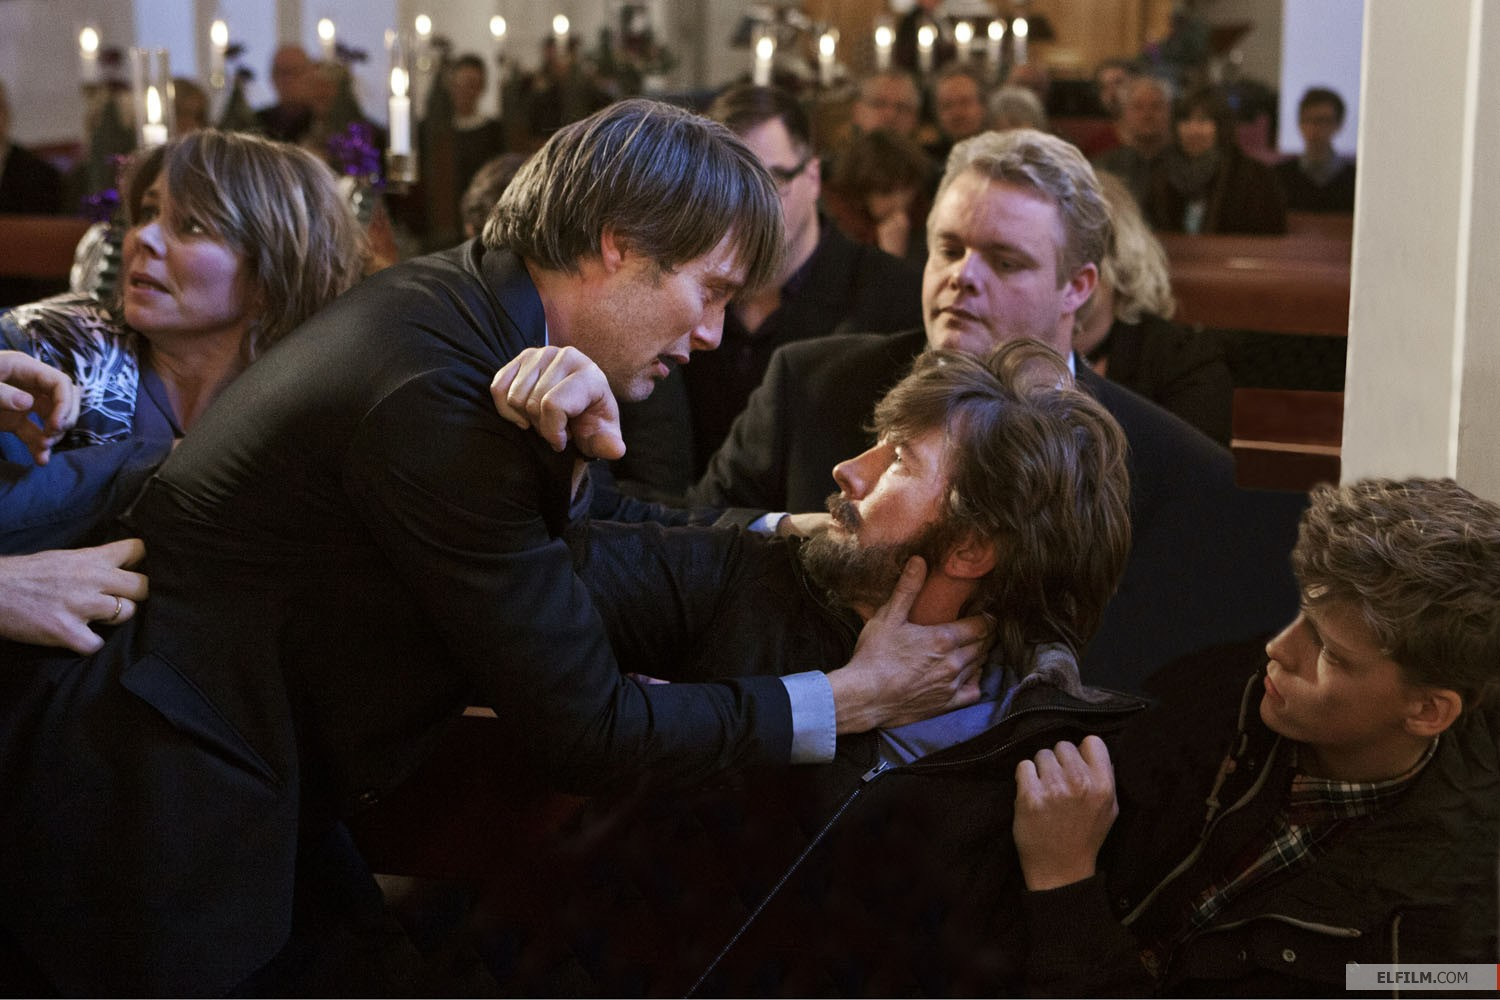 DINAMARCA: A Caça, de Thomas Vinterberg (photo by www.elfilm.com)